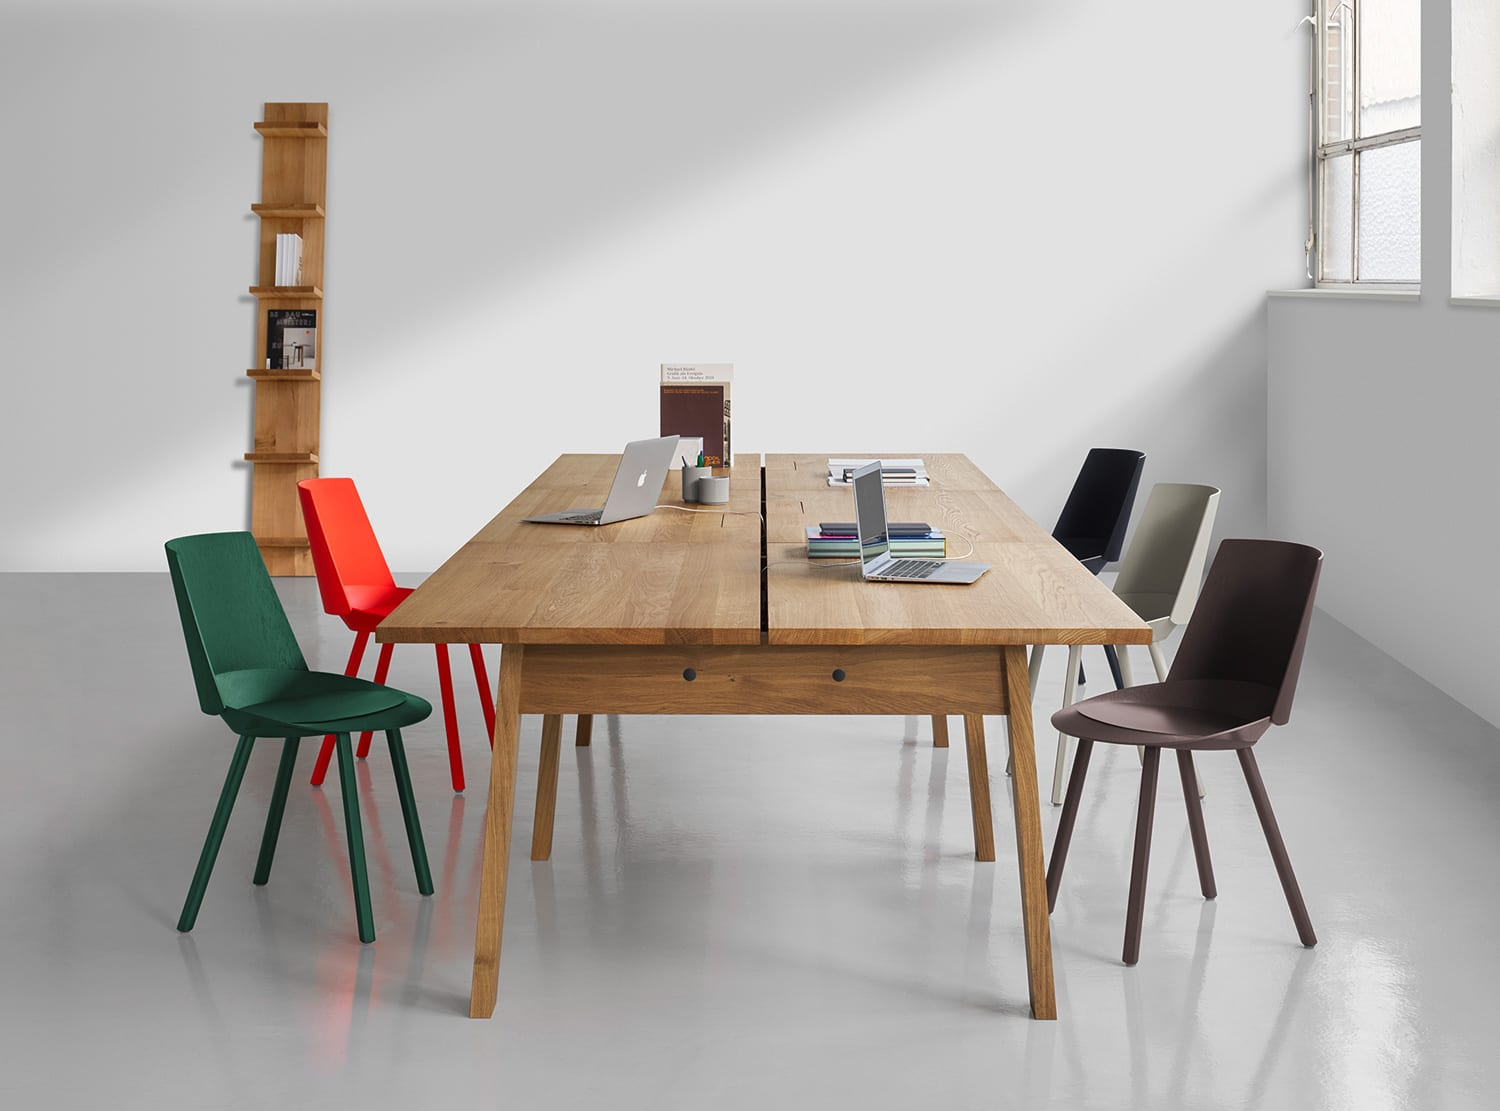 New Pieces by e15 at Imm Cologne 2019   Yellowtrace